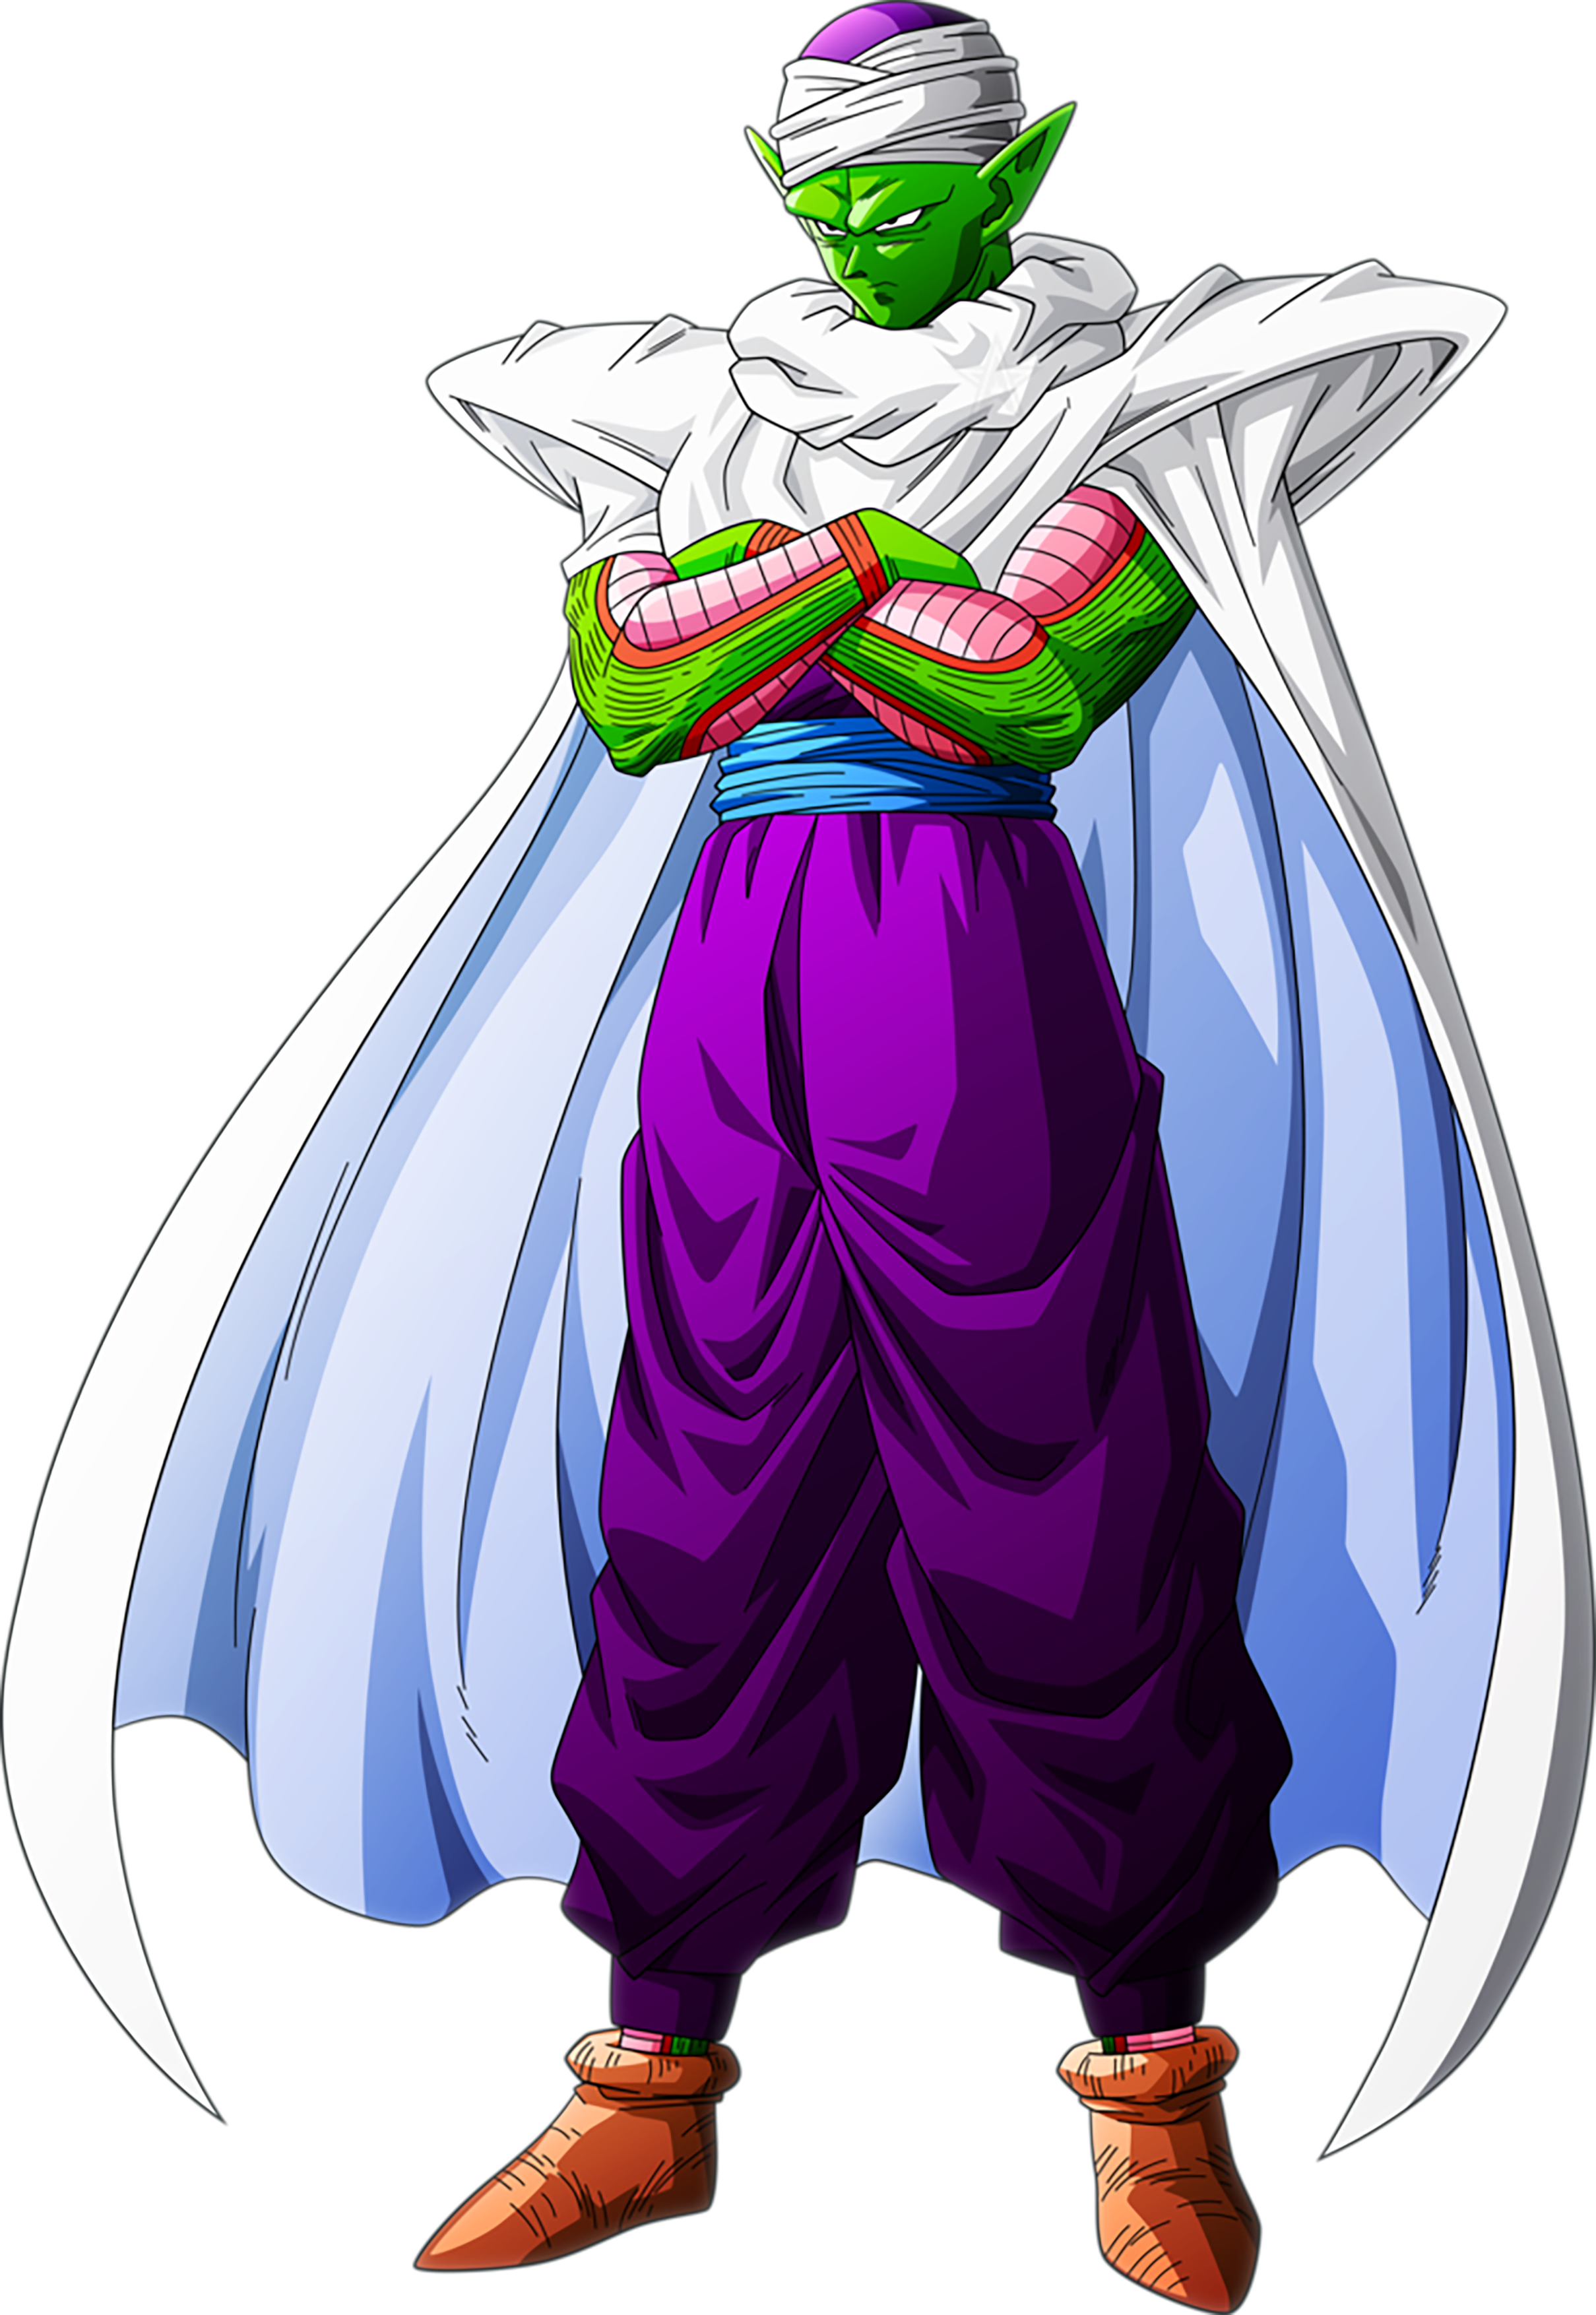 Piccolo standing tall with his arms crossed.